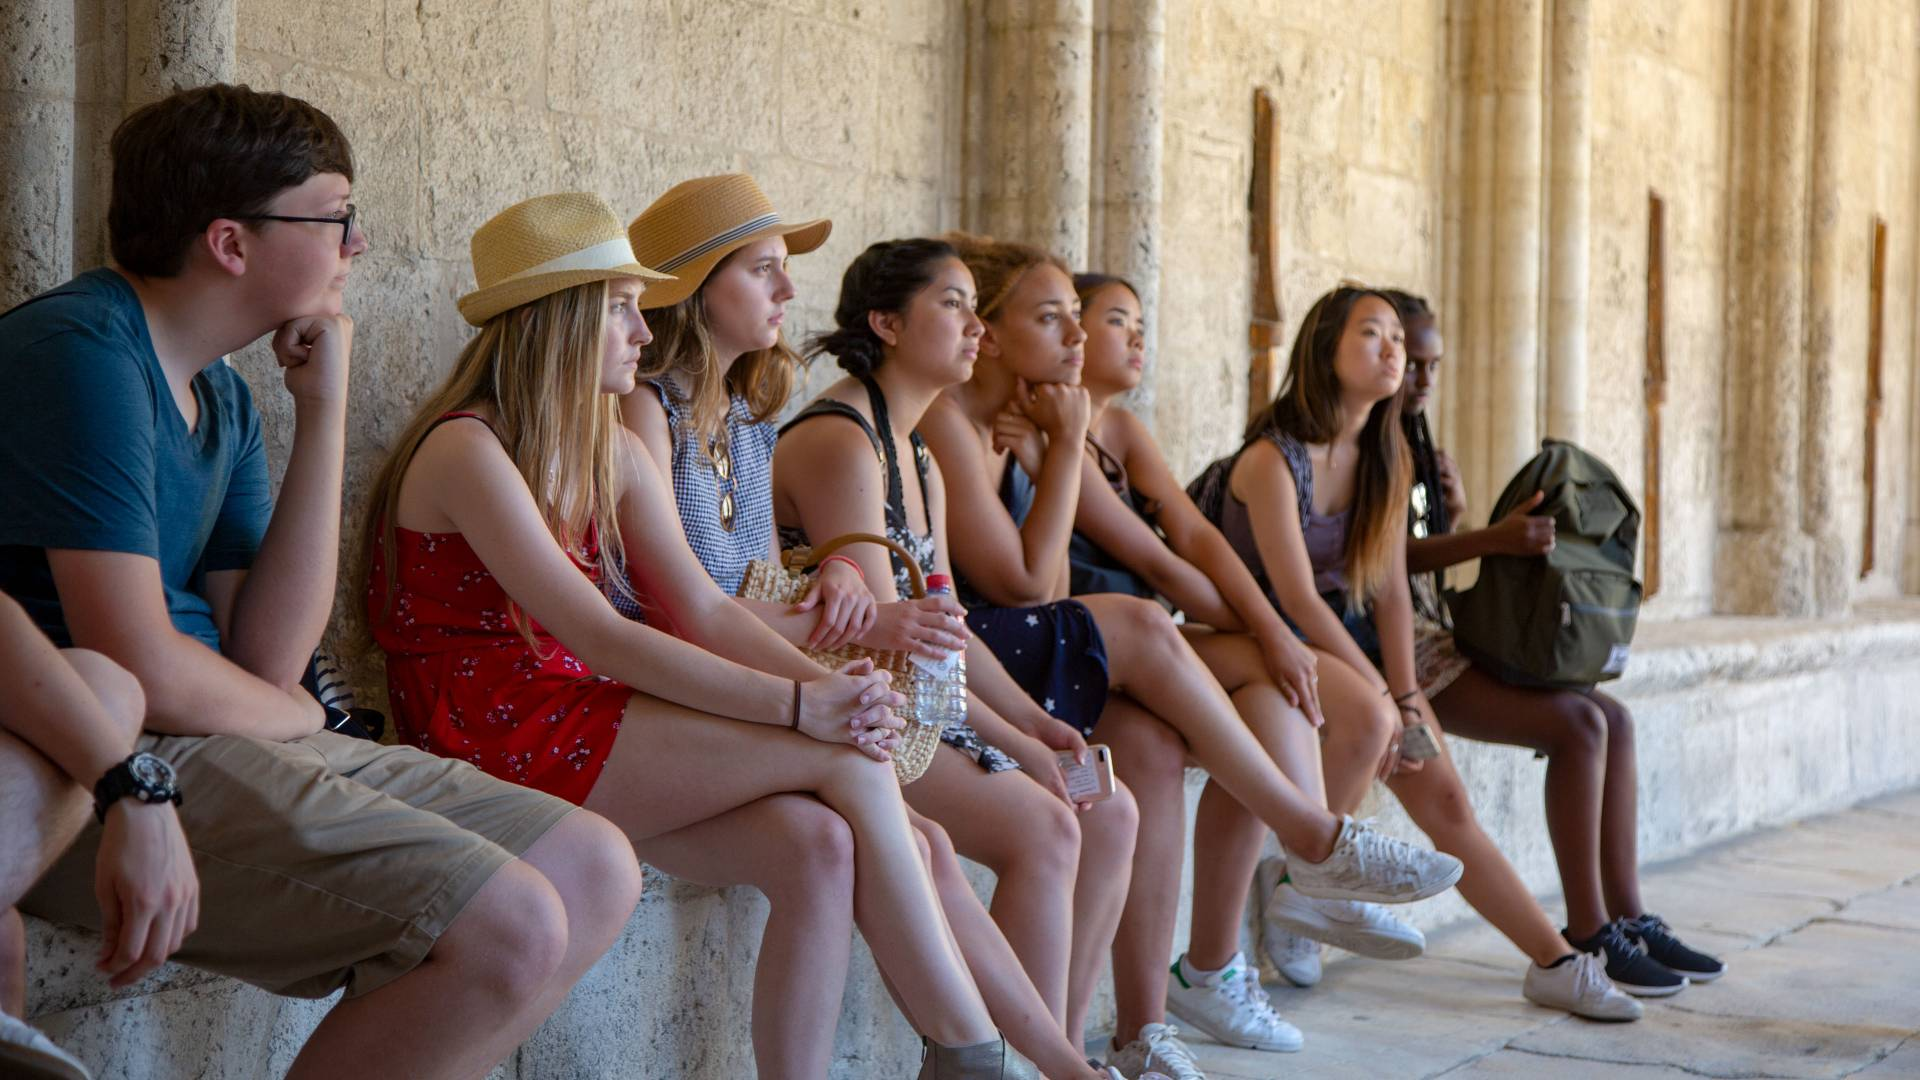 Students sitting against wall in Arles, France